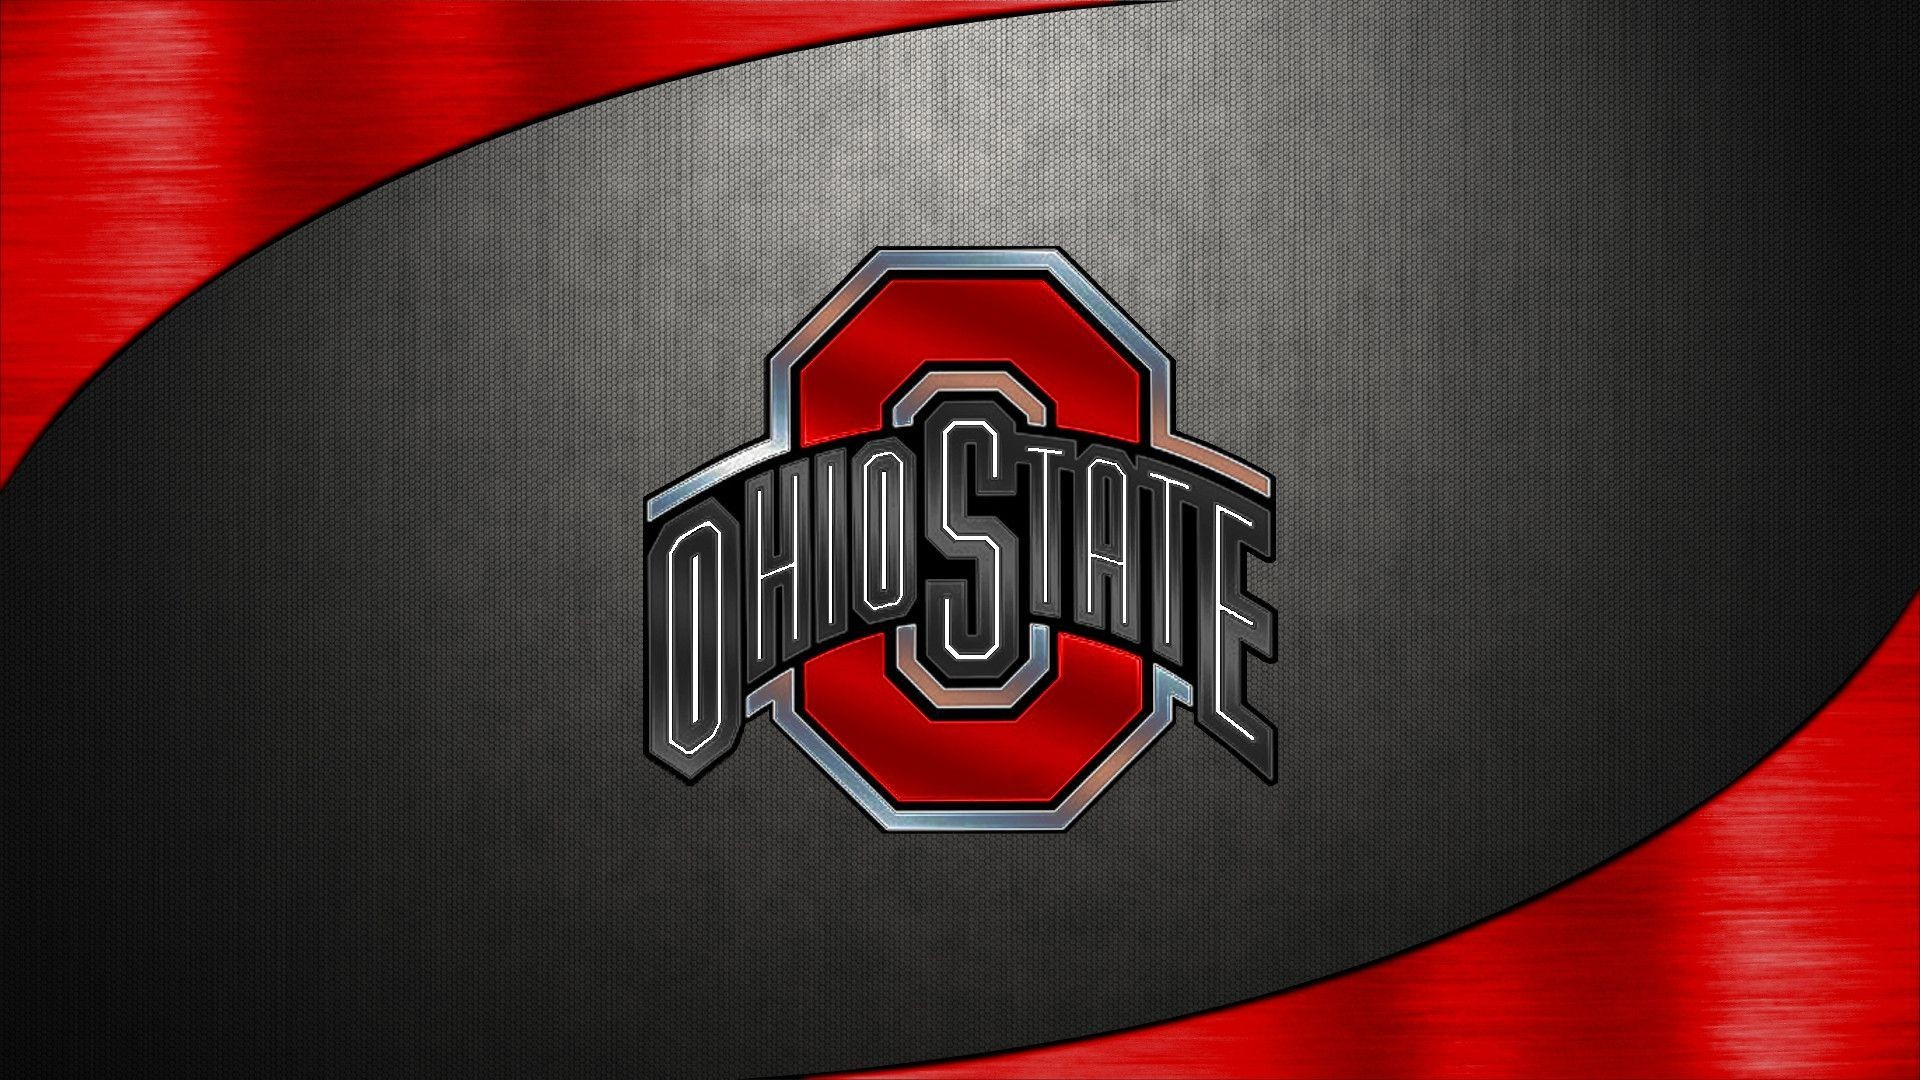 Ohio State Football Wallpaper   HD Wallpapers   Pinterest   Wallpaper and Hd  wallpaper